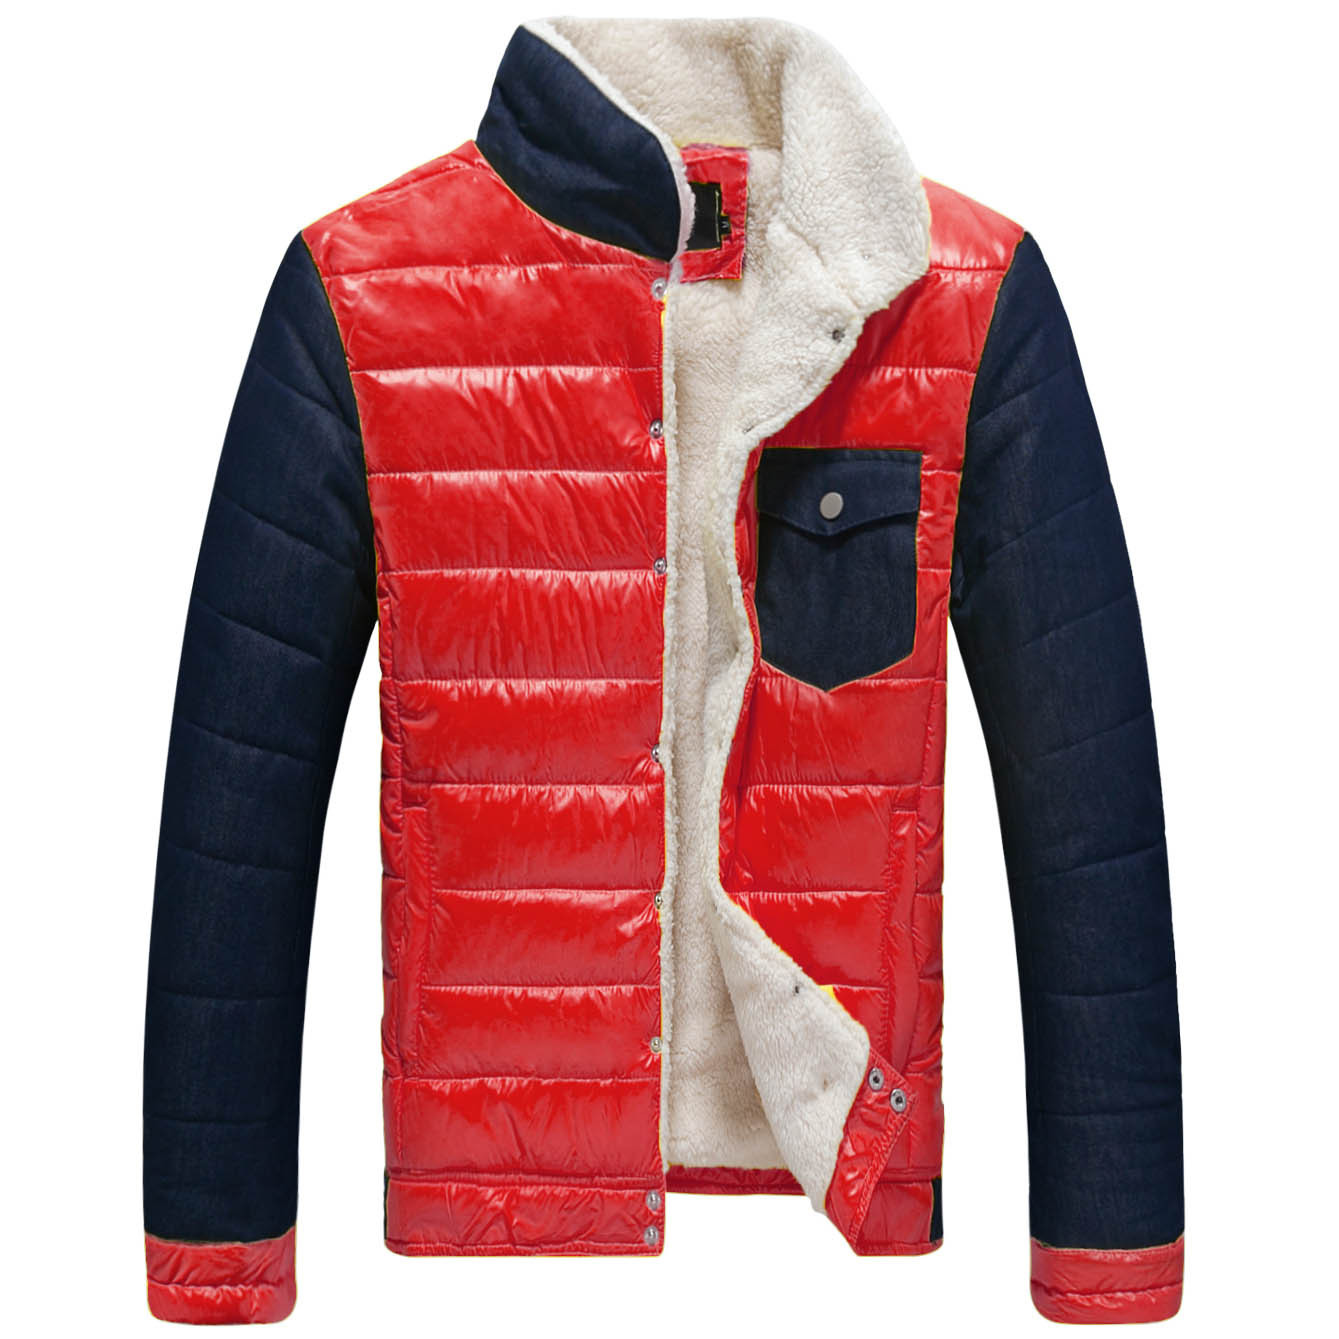 Men s winter clothes new collar color coat jacket youth SC coat large spot